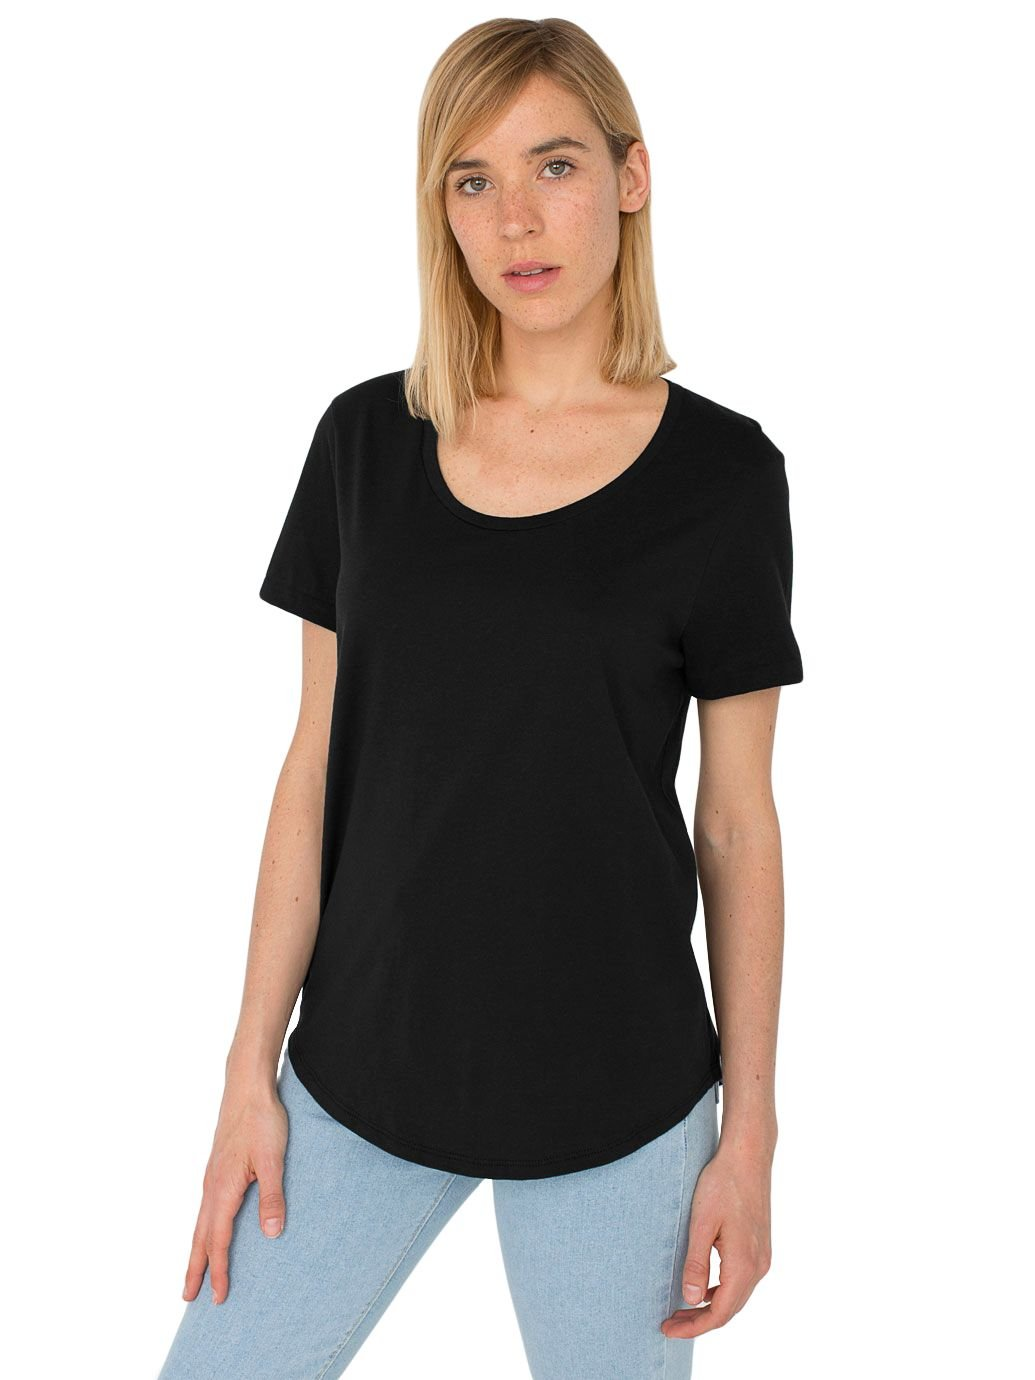 American Apparel Women's Ultra Wash Short Sleeve Tee, Black, Medium